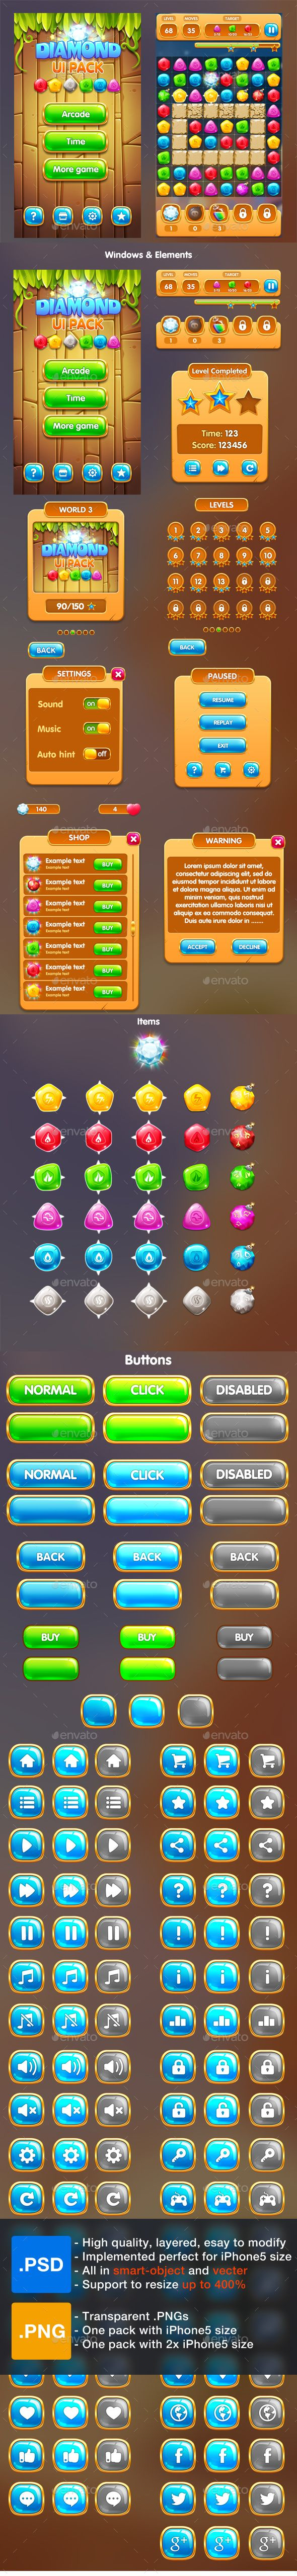 Cartoon Game UI Pack 1 A complete set of graphical user interface (GUI) to build 2D video games.(Perfect with Match 3 game in Diamond, Stone , Jewel style…) Suitable for casual, all-ages, kids, or girls games. - 40 iconic buttons - Text mode and level buttons also provided - Pre-made windows, HUD, and other elements - Full vector and Smart-object So it's customizable and resizeable(Up to 400% still keep the same quality). - Currently .PSD is implemented perfect for iPhone 5 size - Text is…